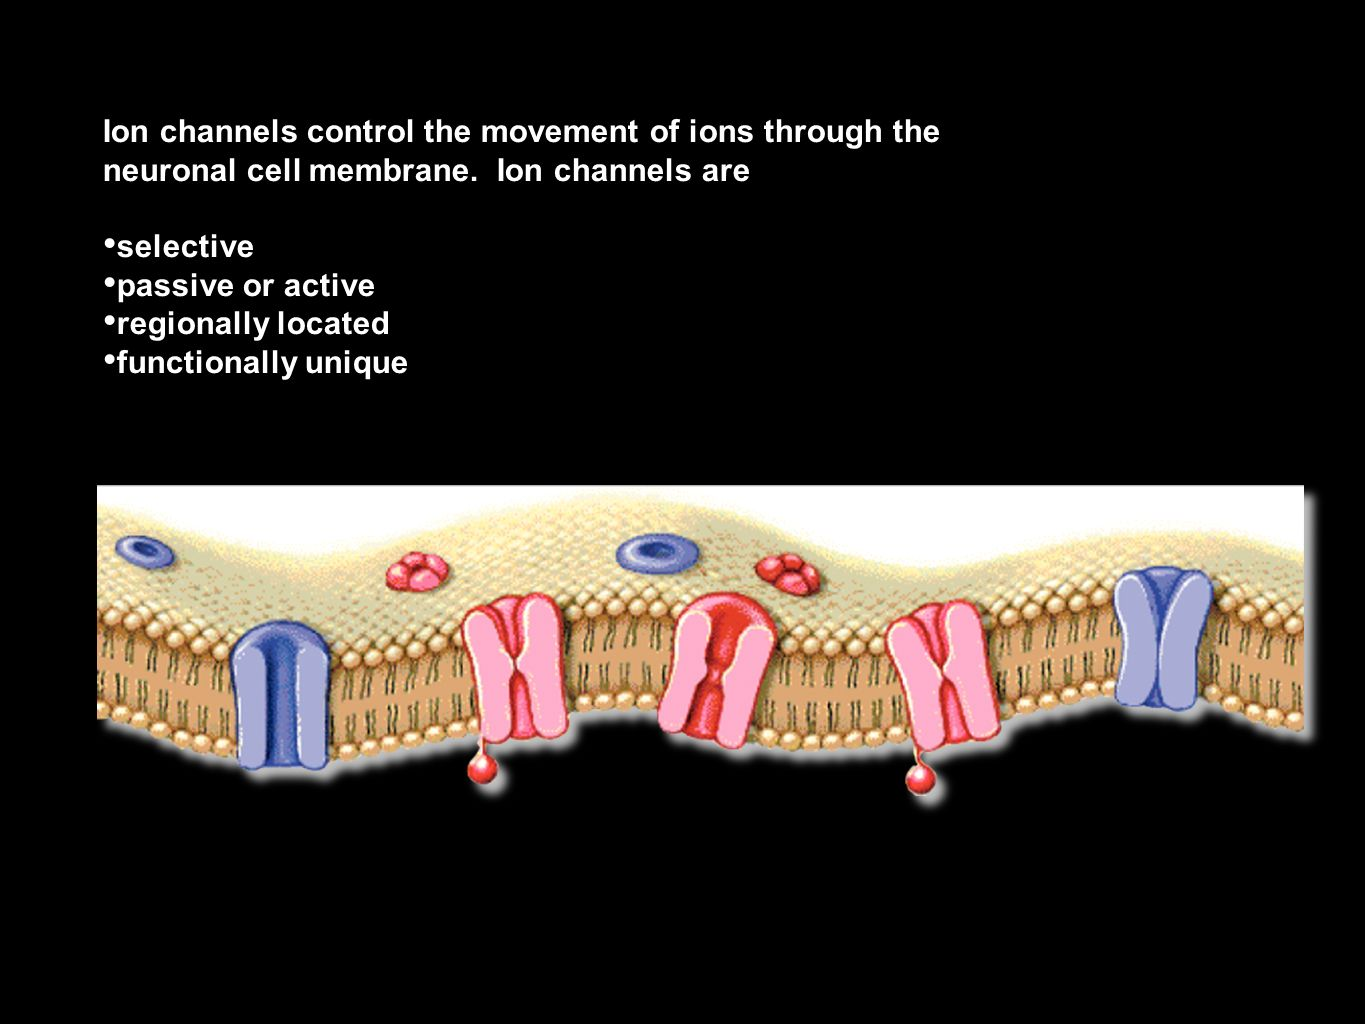 Ion channels control the movement of ions through the neuronal cell membrane. Ion channels are selective passive or active regionally located function